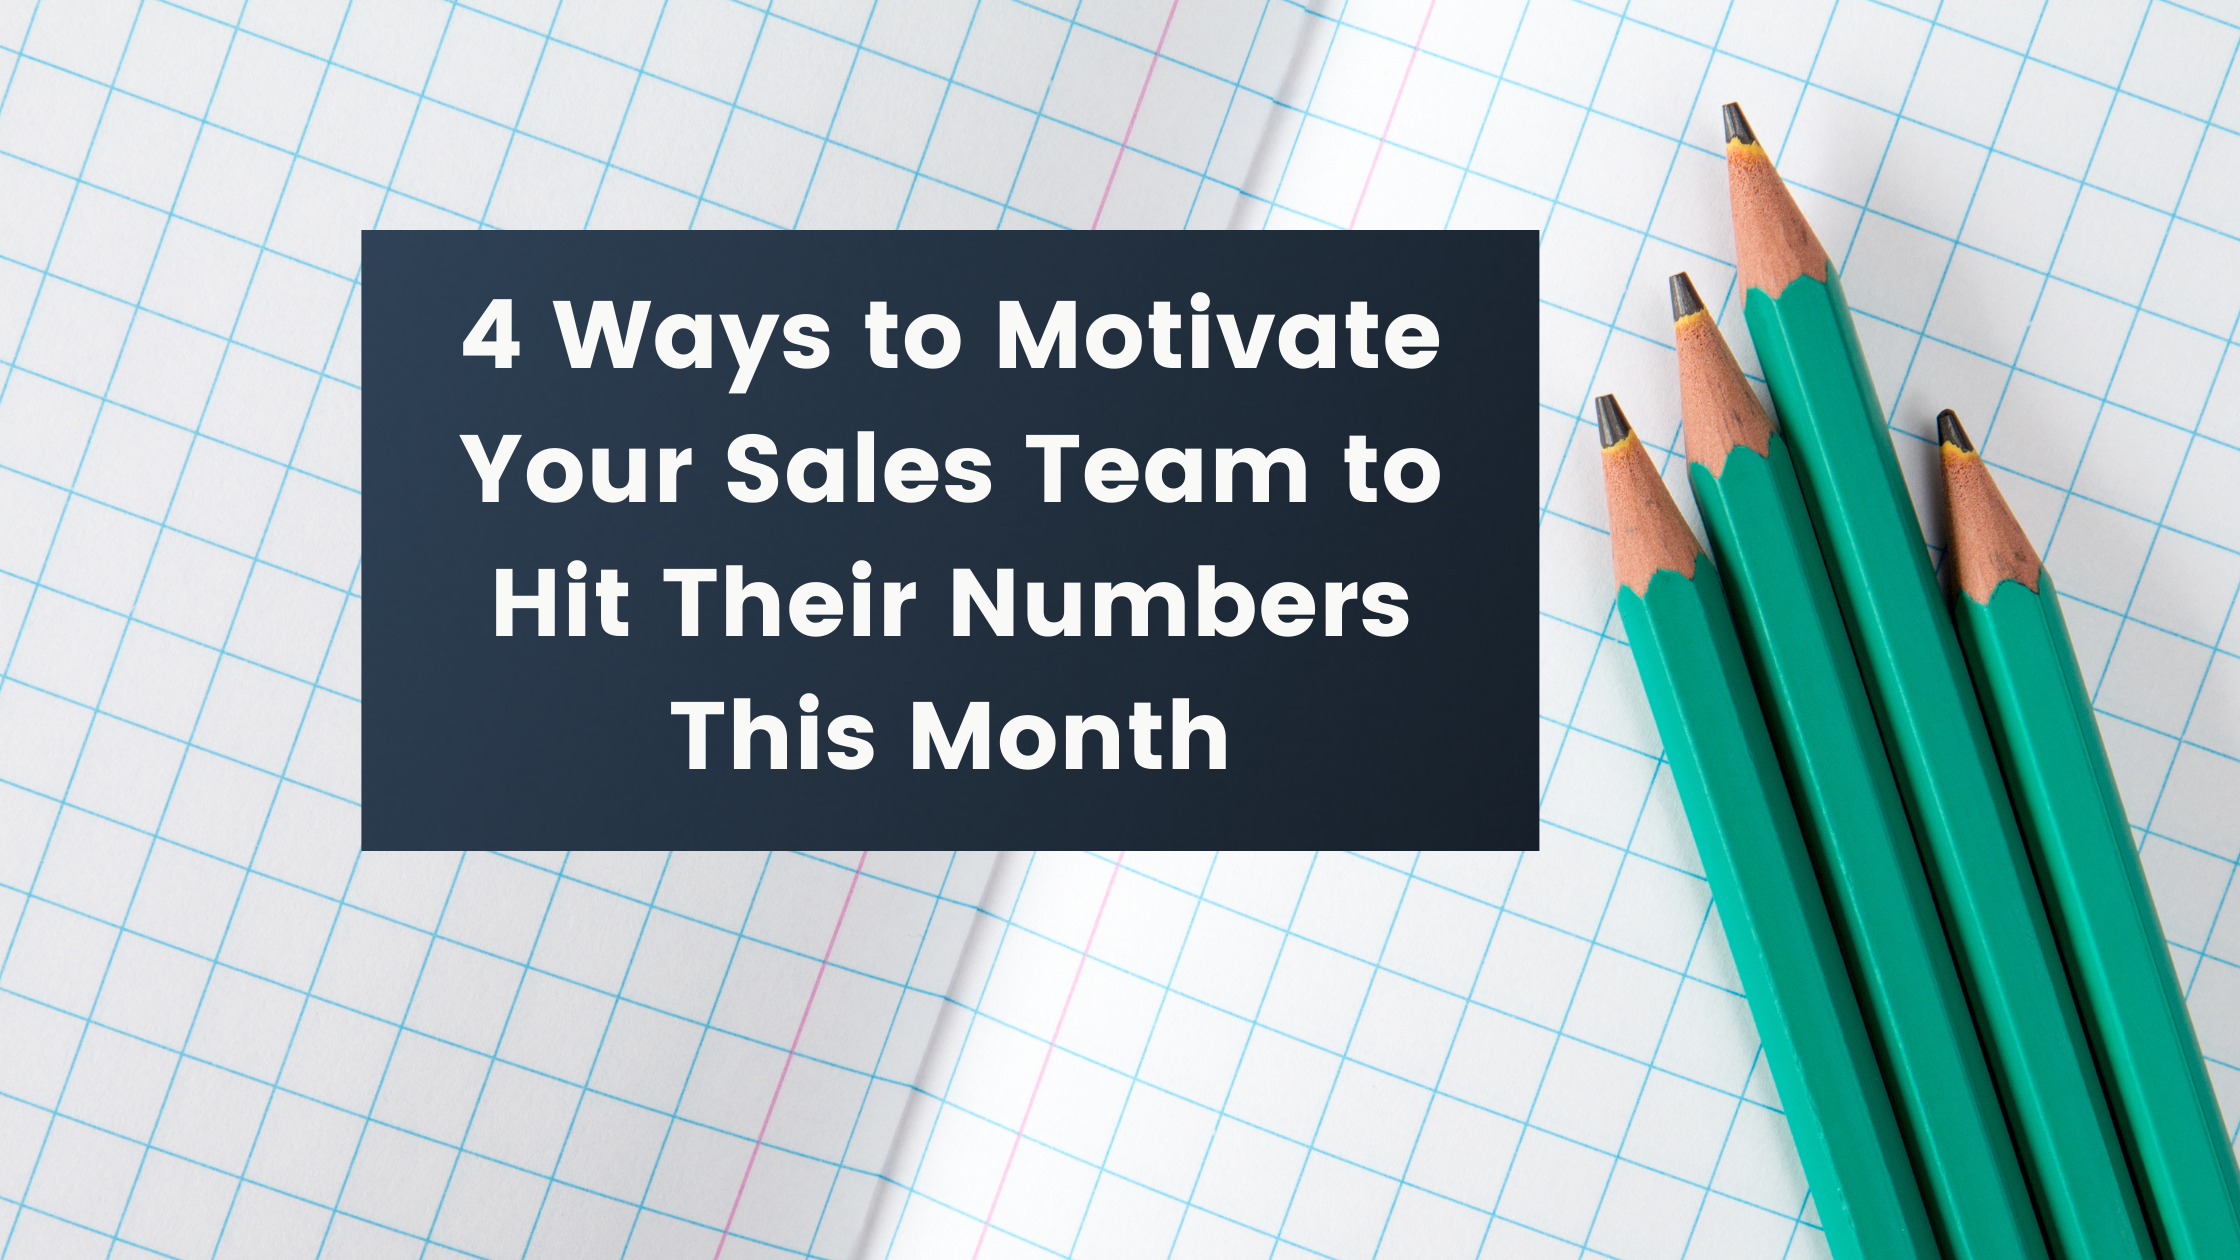 4 Ways to Motivate Your Sales Team to Hit Their Numbers This Month | John Aikin